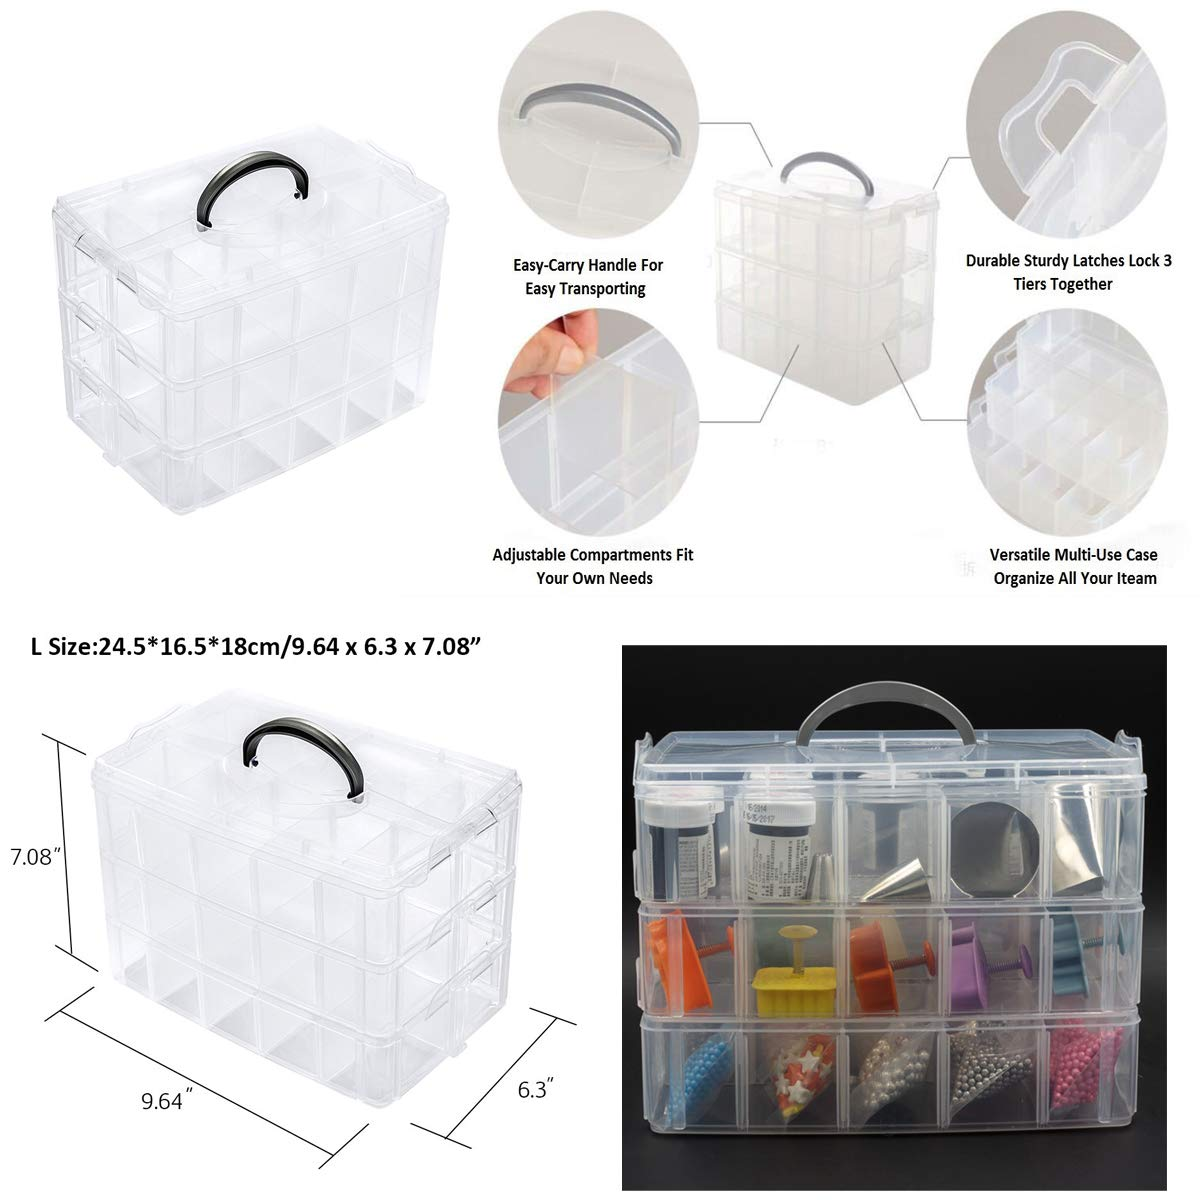 SUPVOX 20-Grid Jewelry Organizer Box Beads Case Plastic Adjustable Storage Container Case with Removable Dividers Transparent